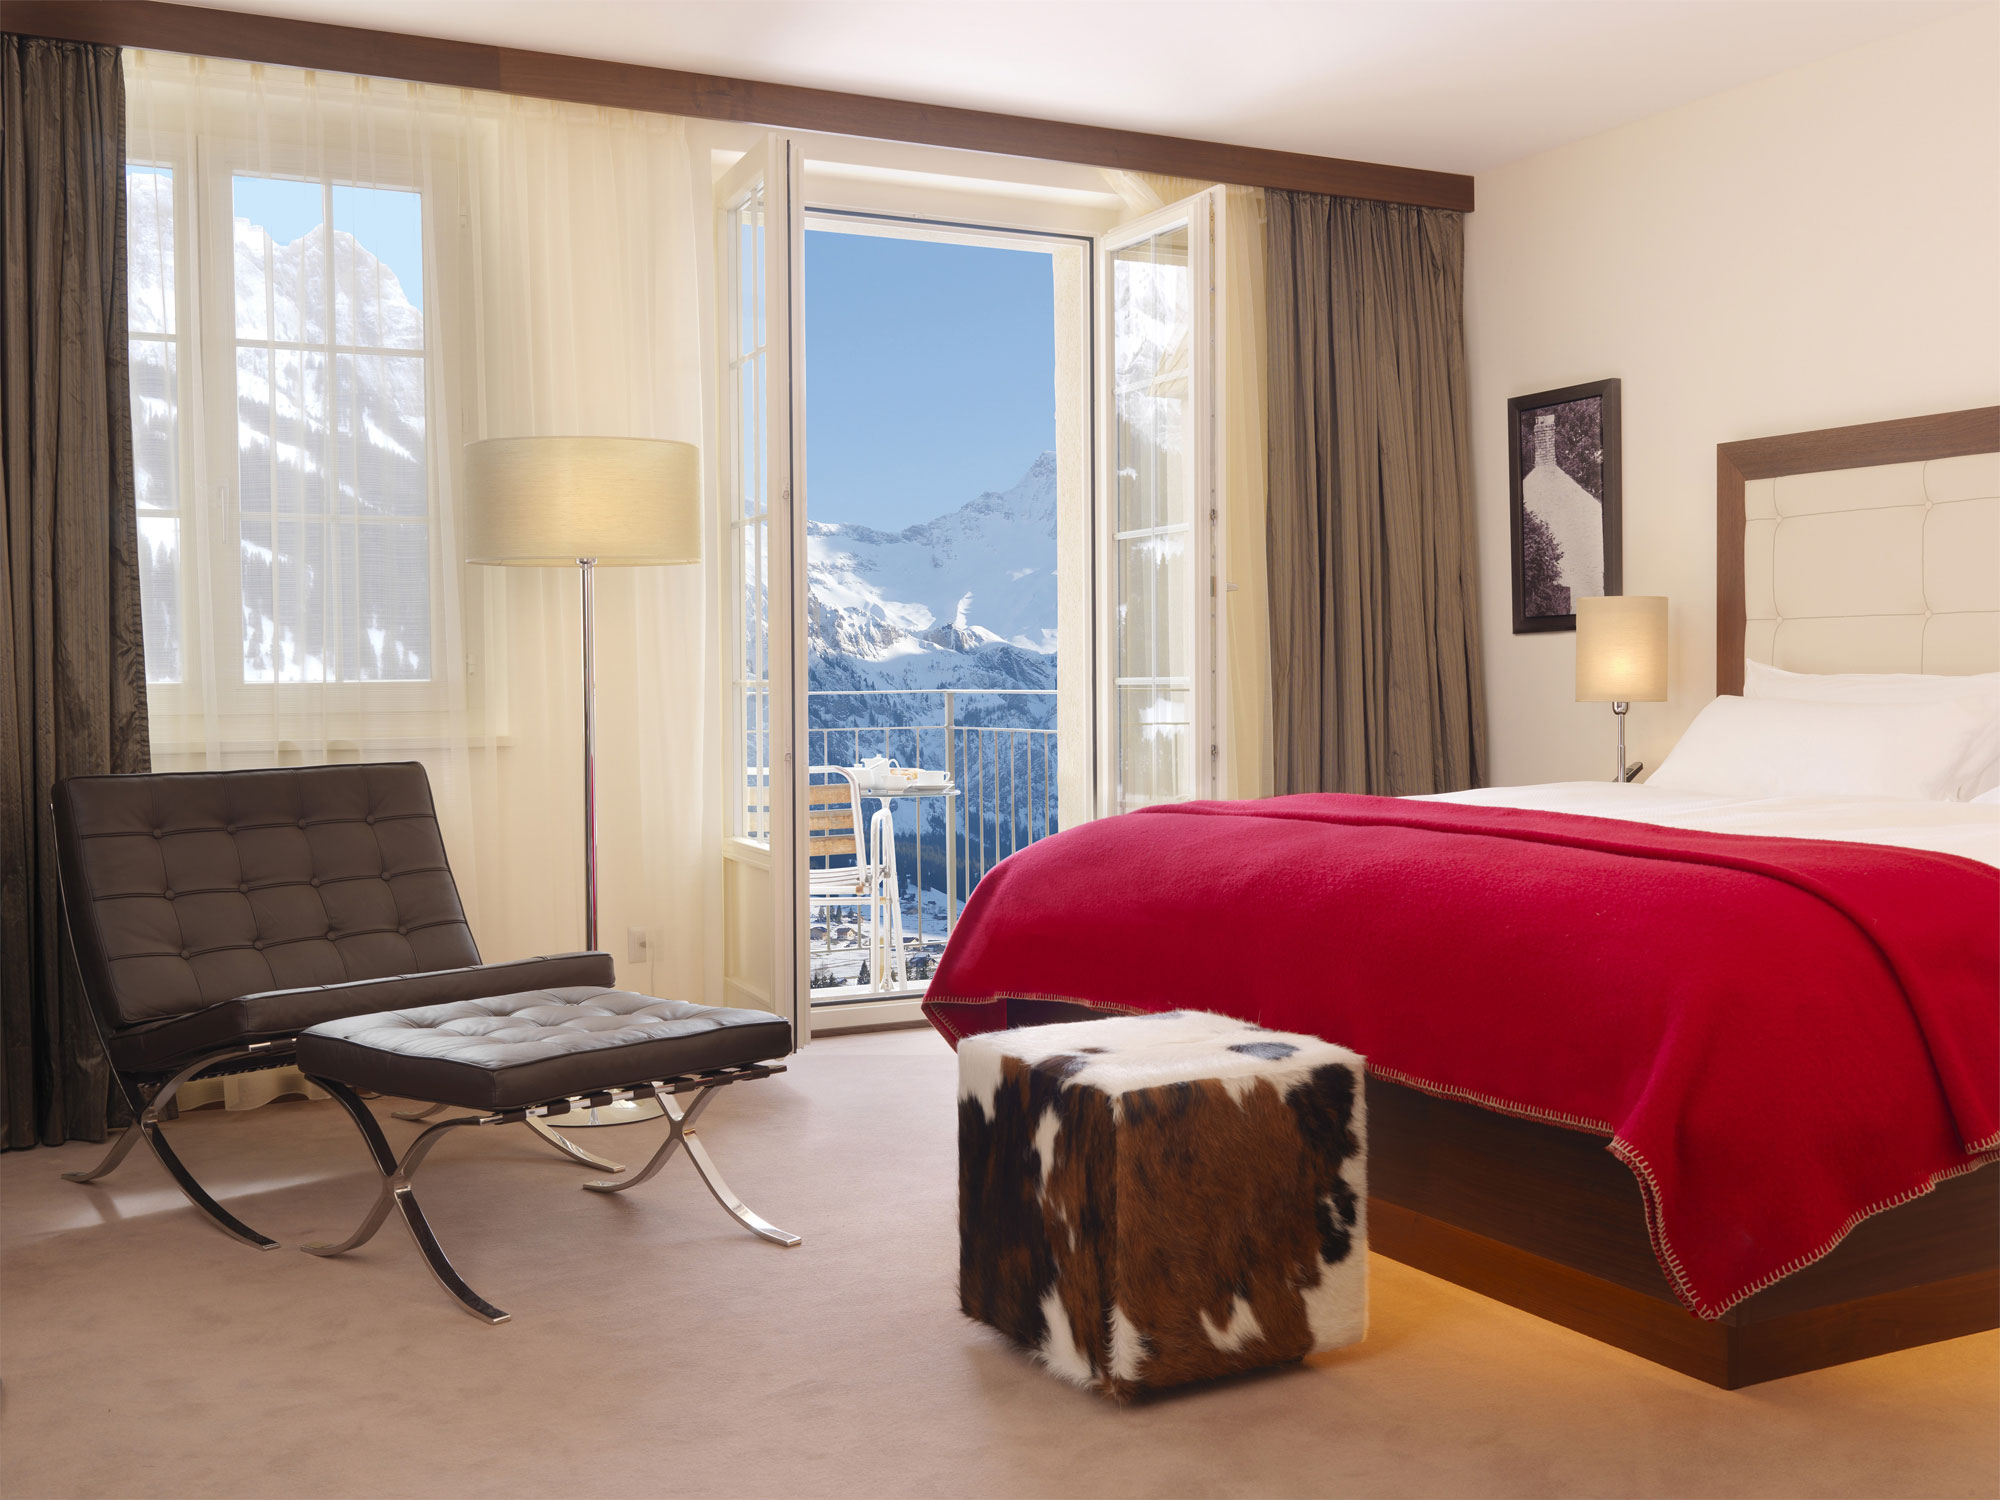 Mesmerizing And Luxurious Hotel With Interior Design That Have Mountain View : Small Pouffe With Black Chairs Near White Bed